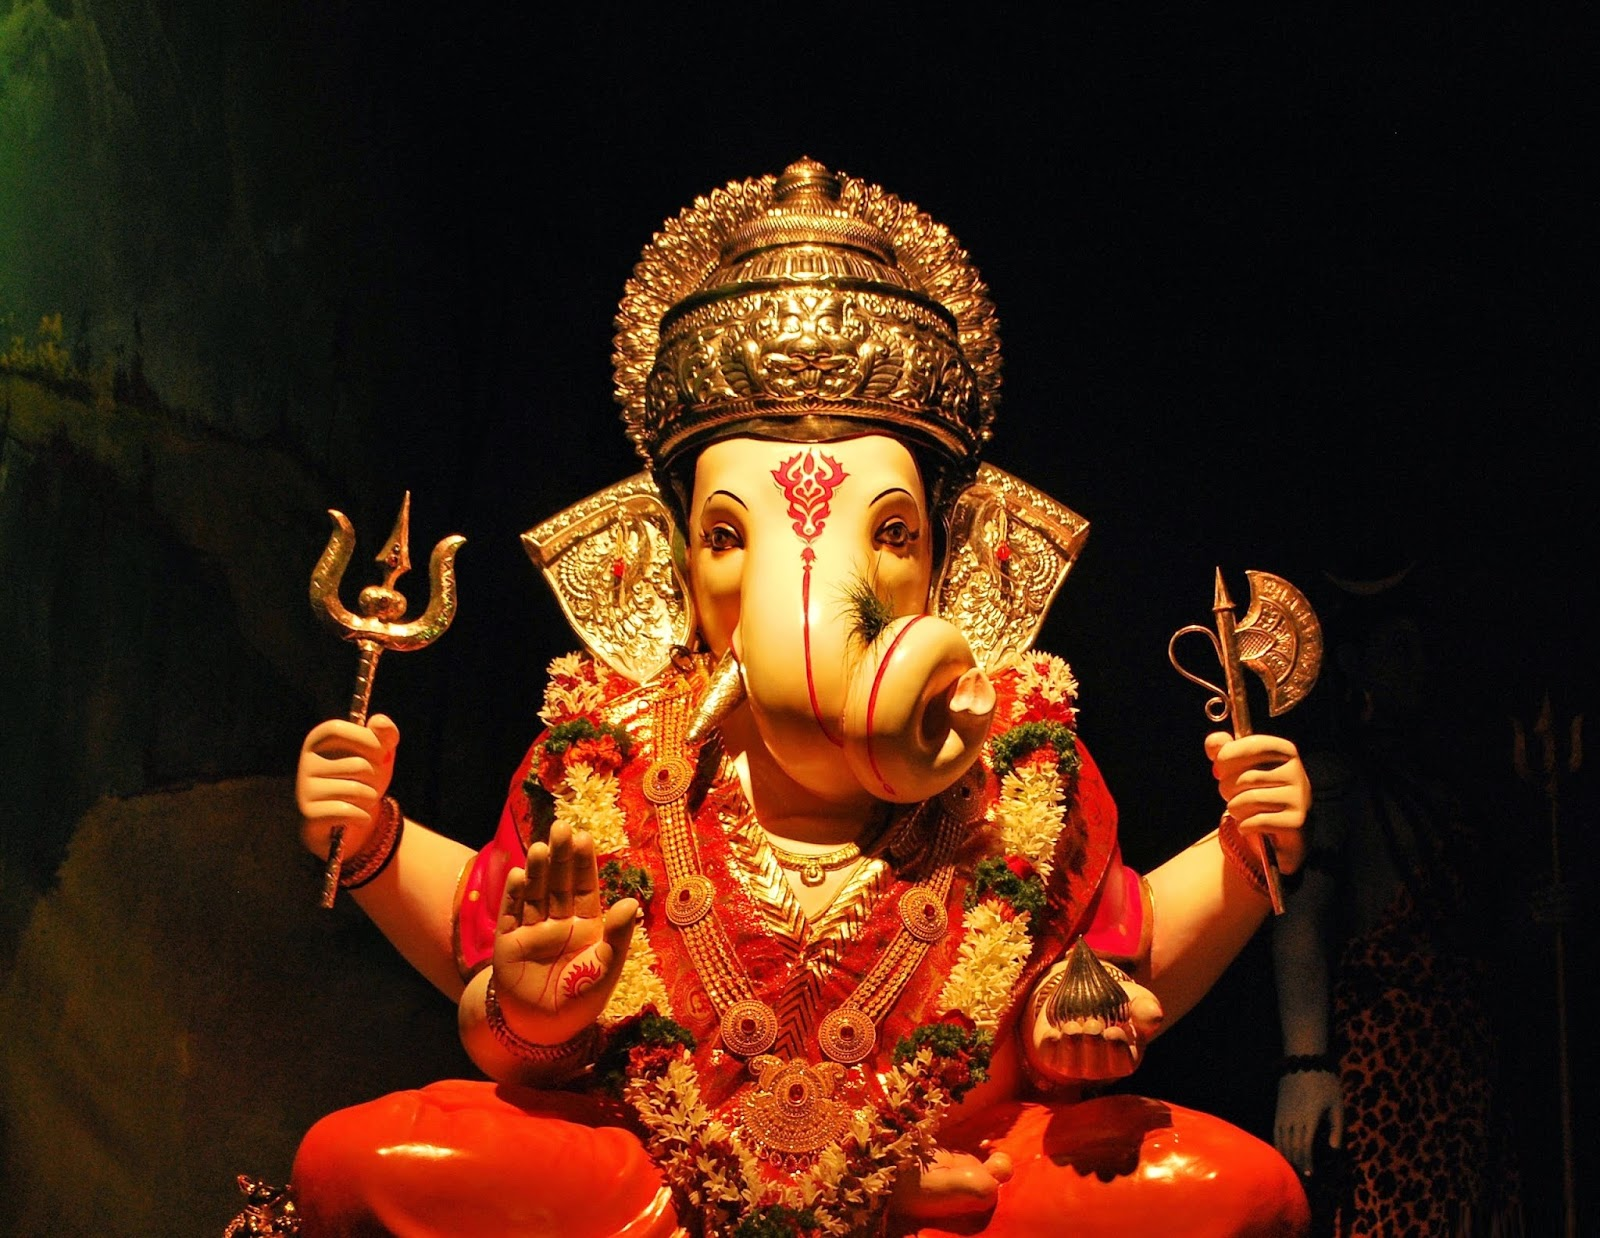 Lord Ganesha Photos: Top 50+ Lord Ganesha Wallpaper Images Latest Pictures